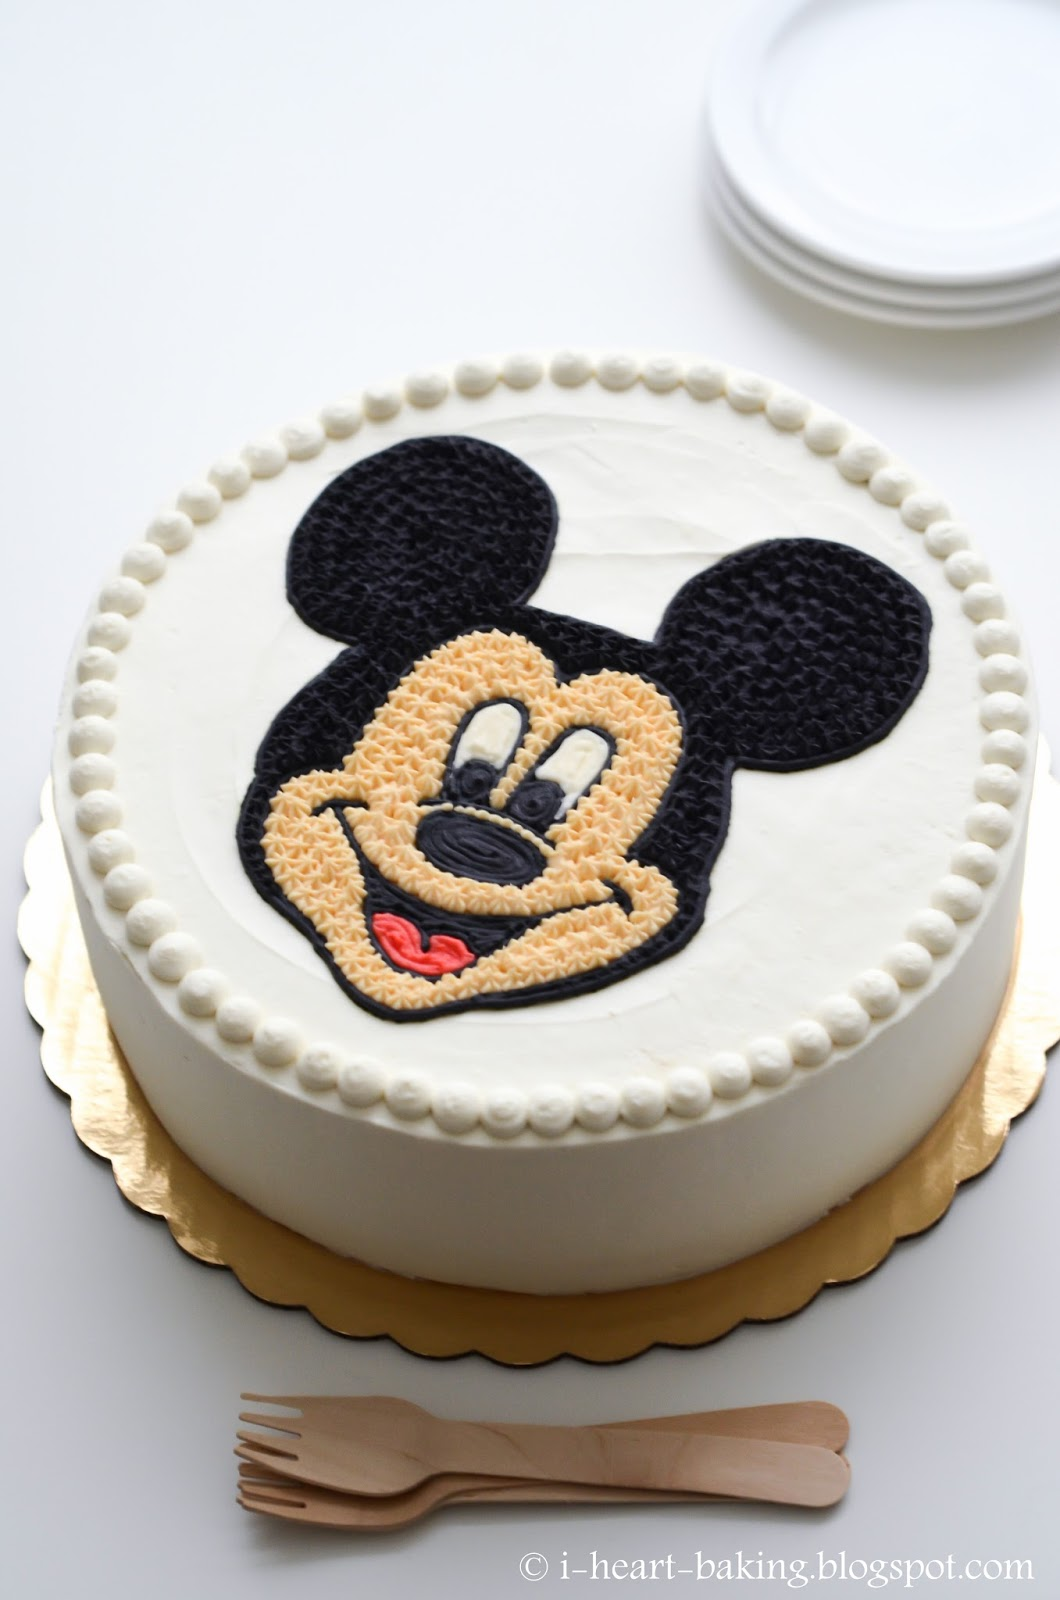 Pictures Of Mickey Mouse Face Cakes : i heart baking!: mickey mouse face birthday cake